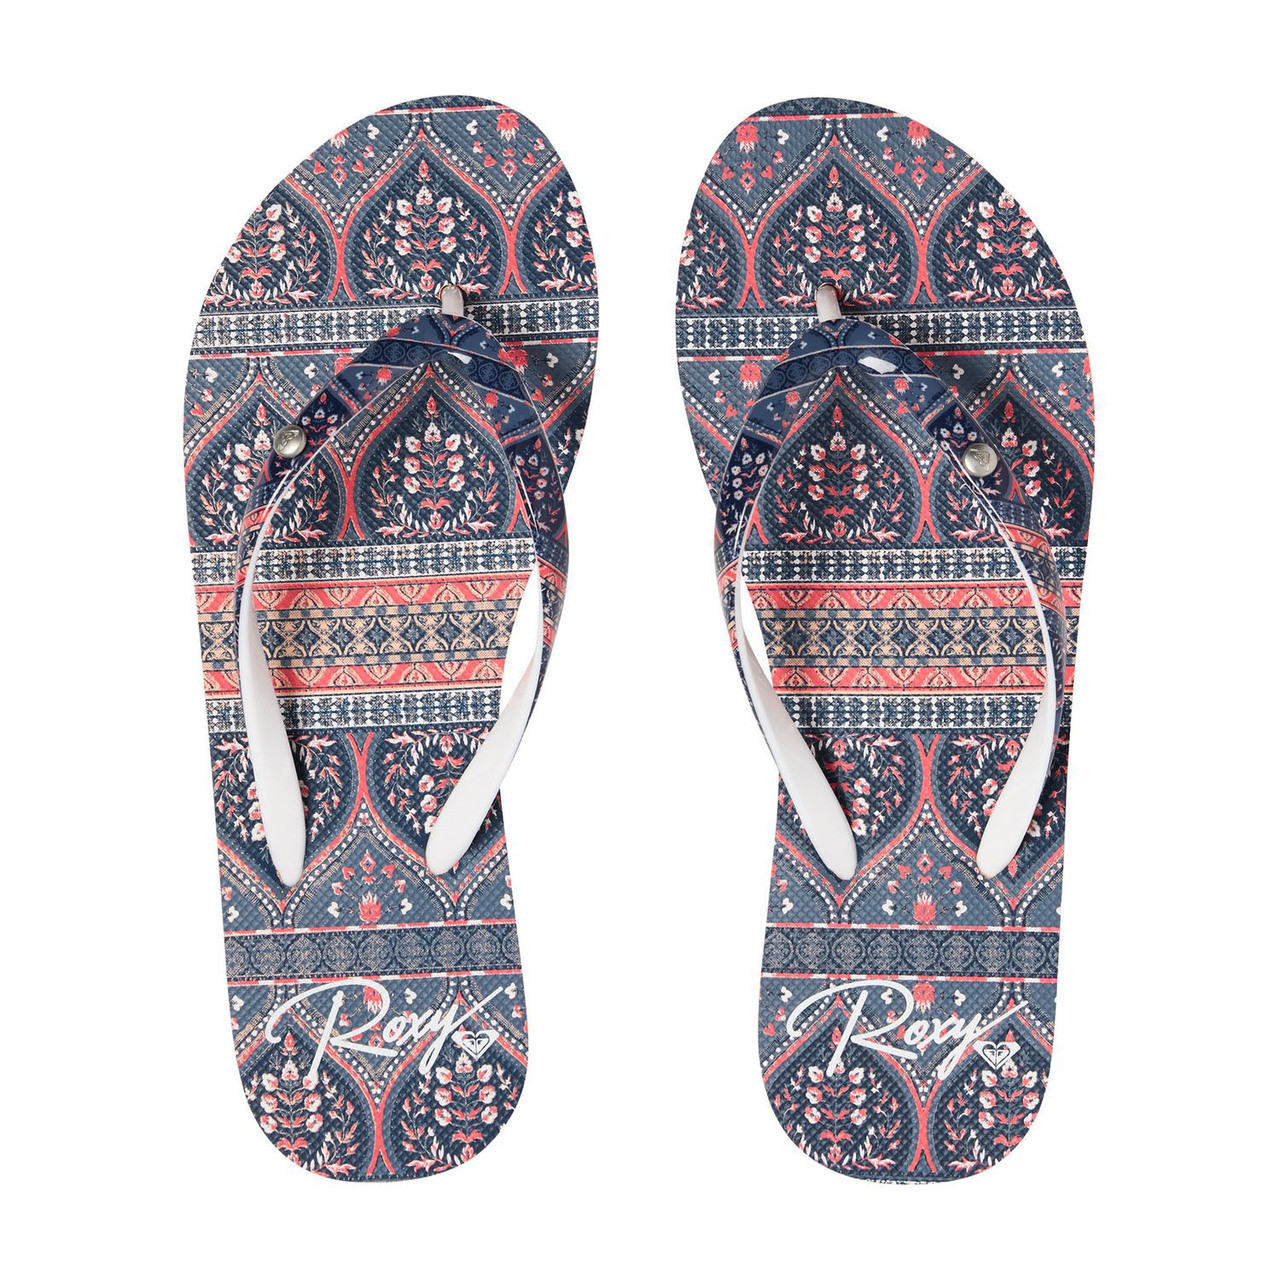 08727b0fa4fce4 Roxy Flip Flop - Portofino II - Blue Print - Surf and Dirt